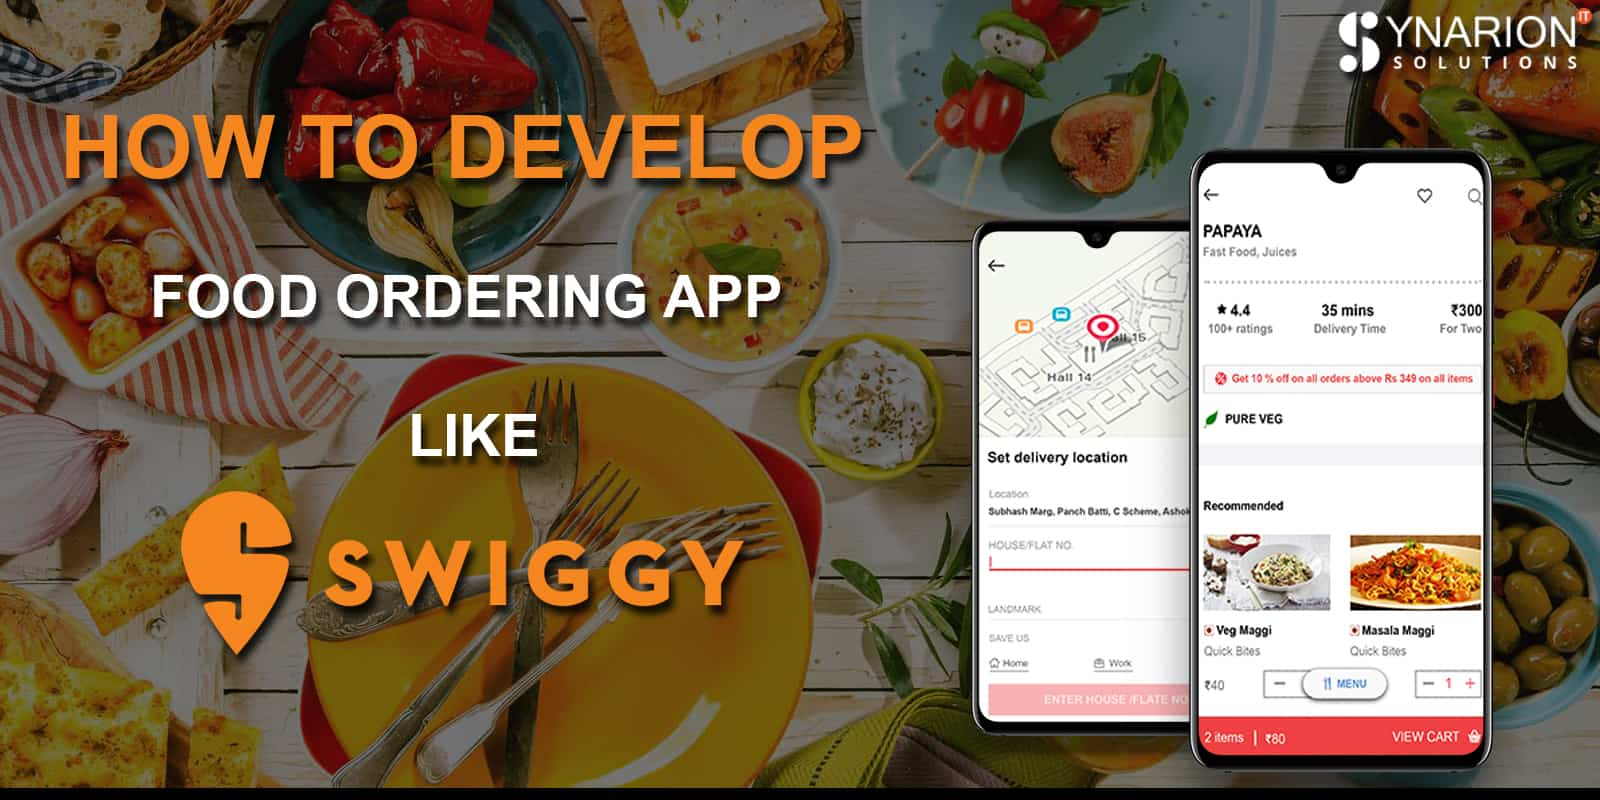 How To Develop Food Ordering App Like Swiggy? - Synarion IT